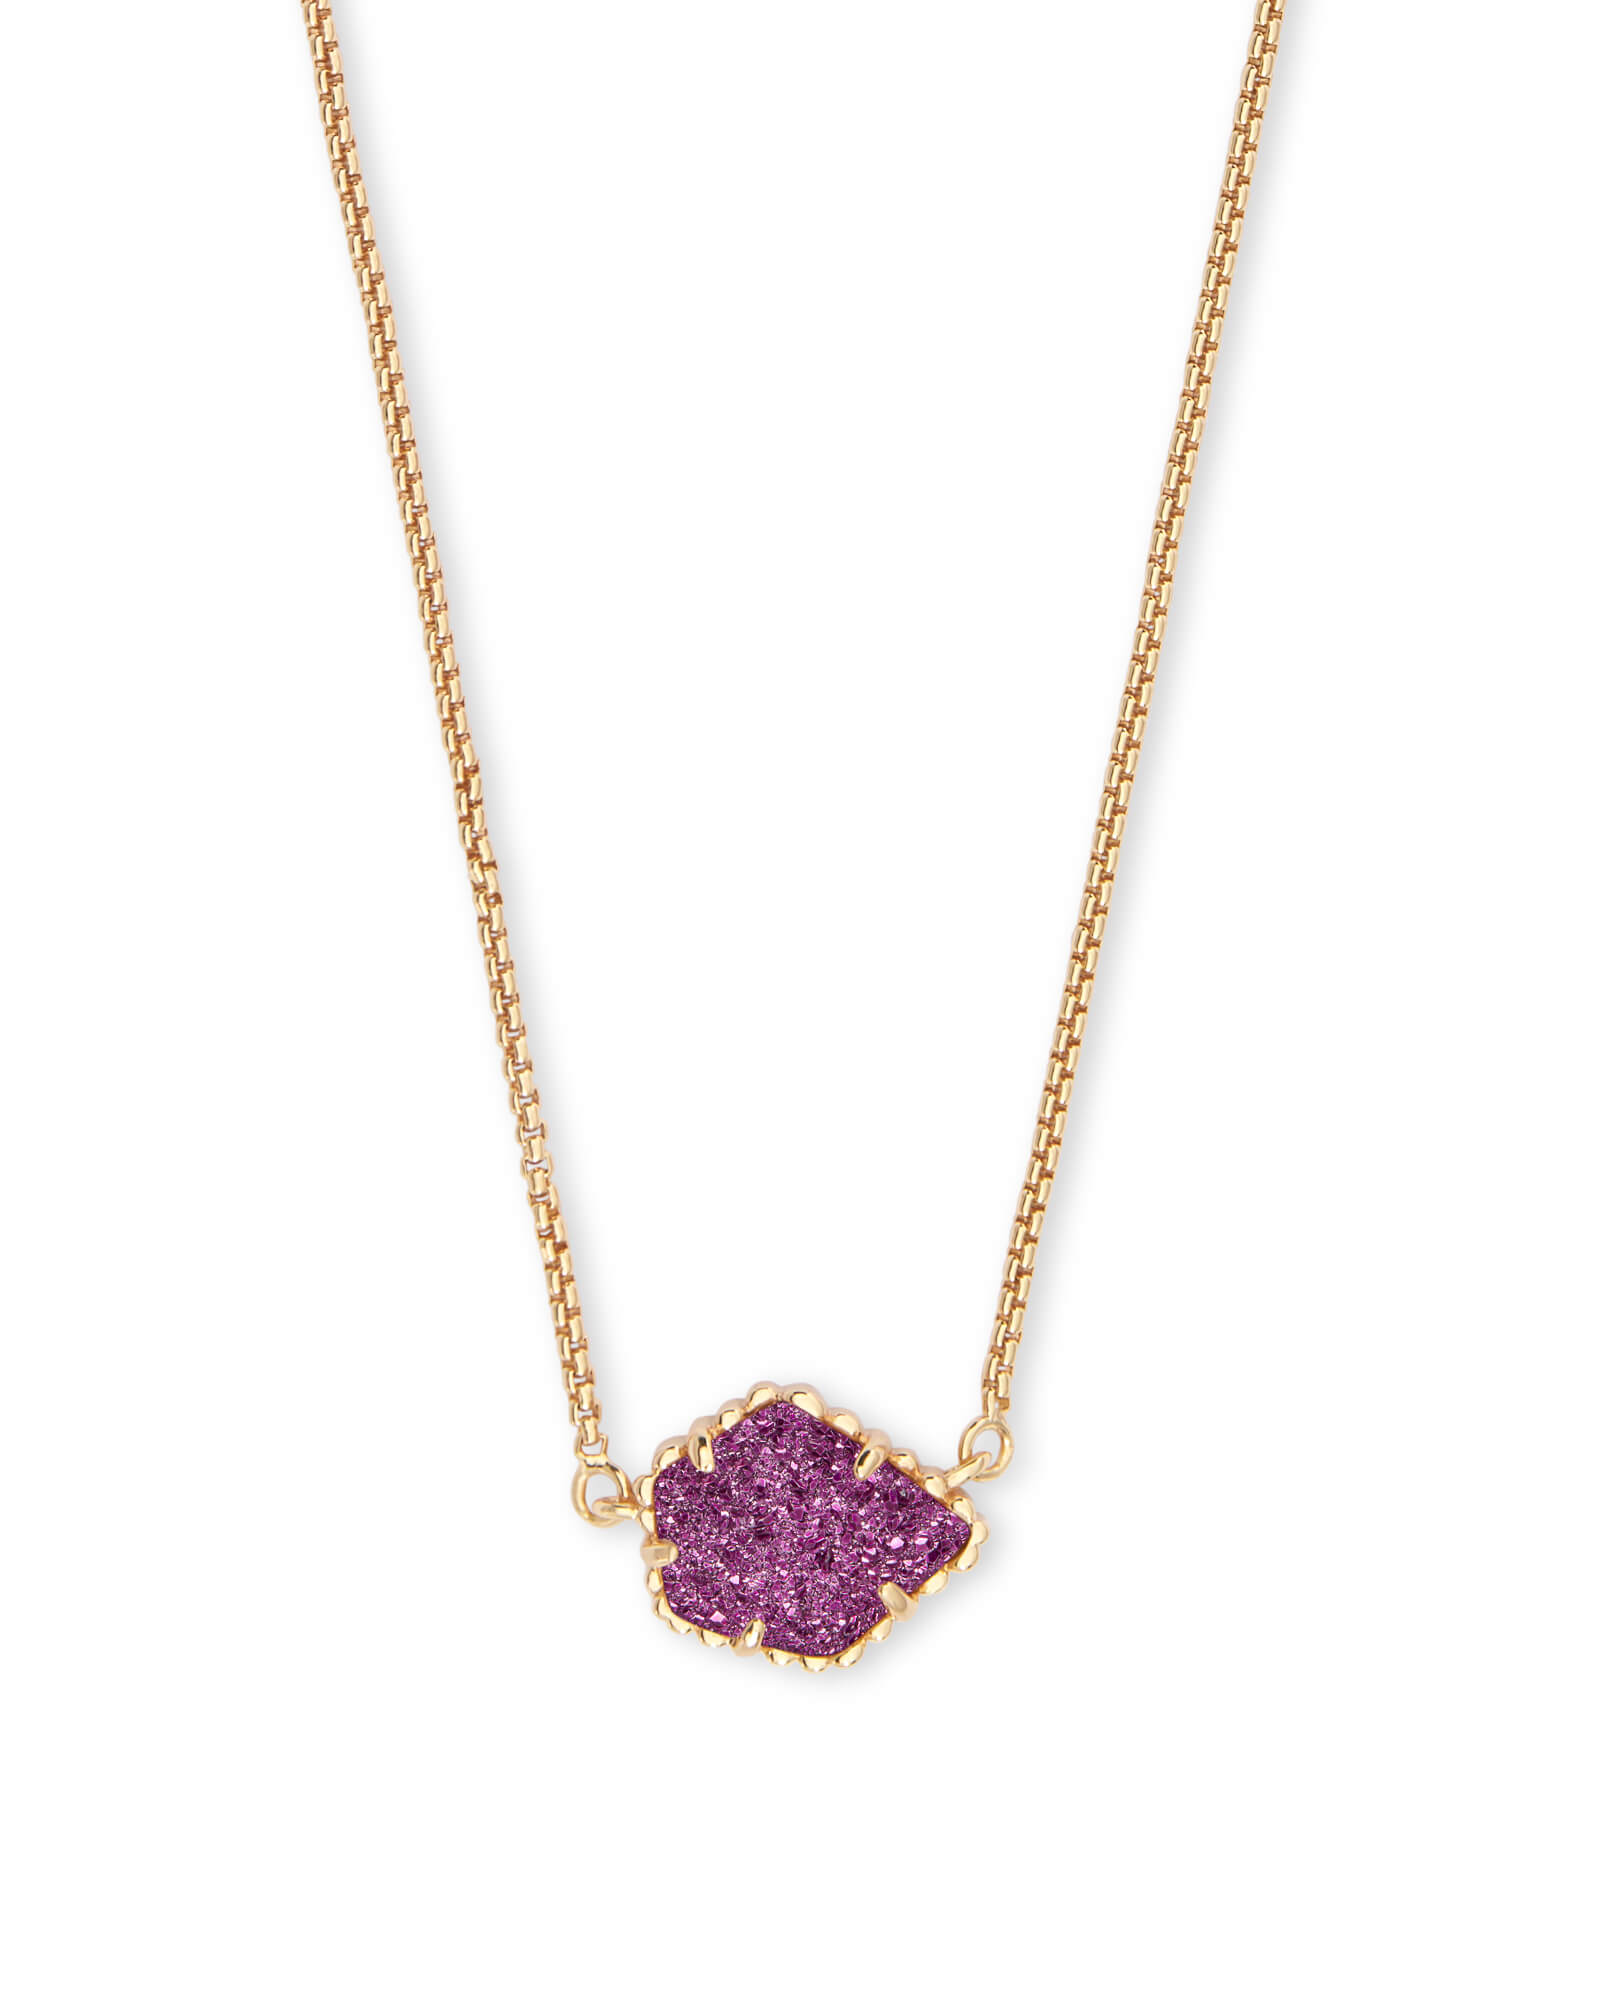 Tess Pendant Necklace in Gold